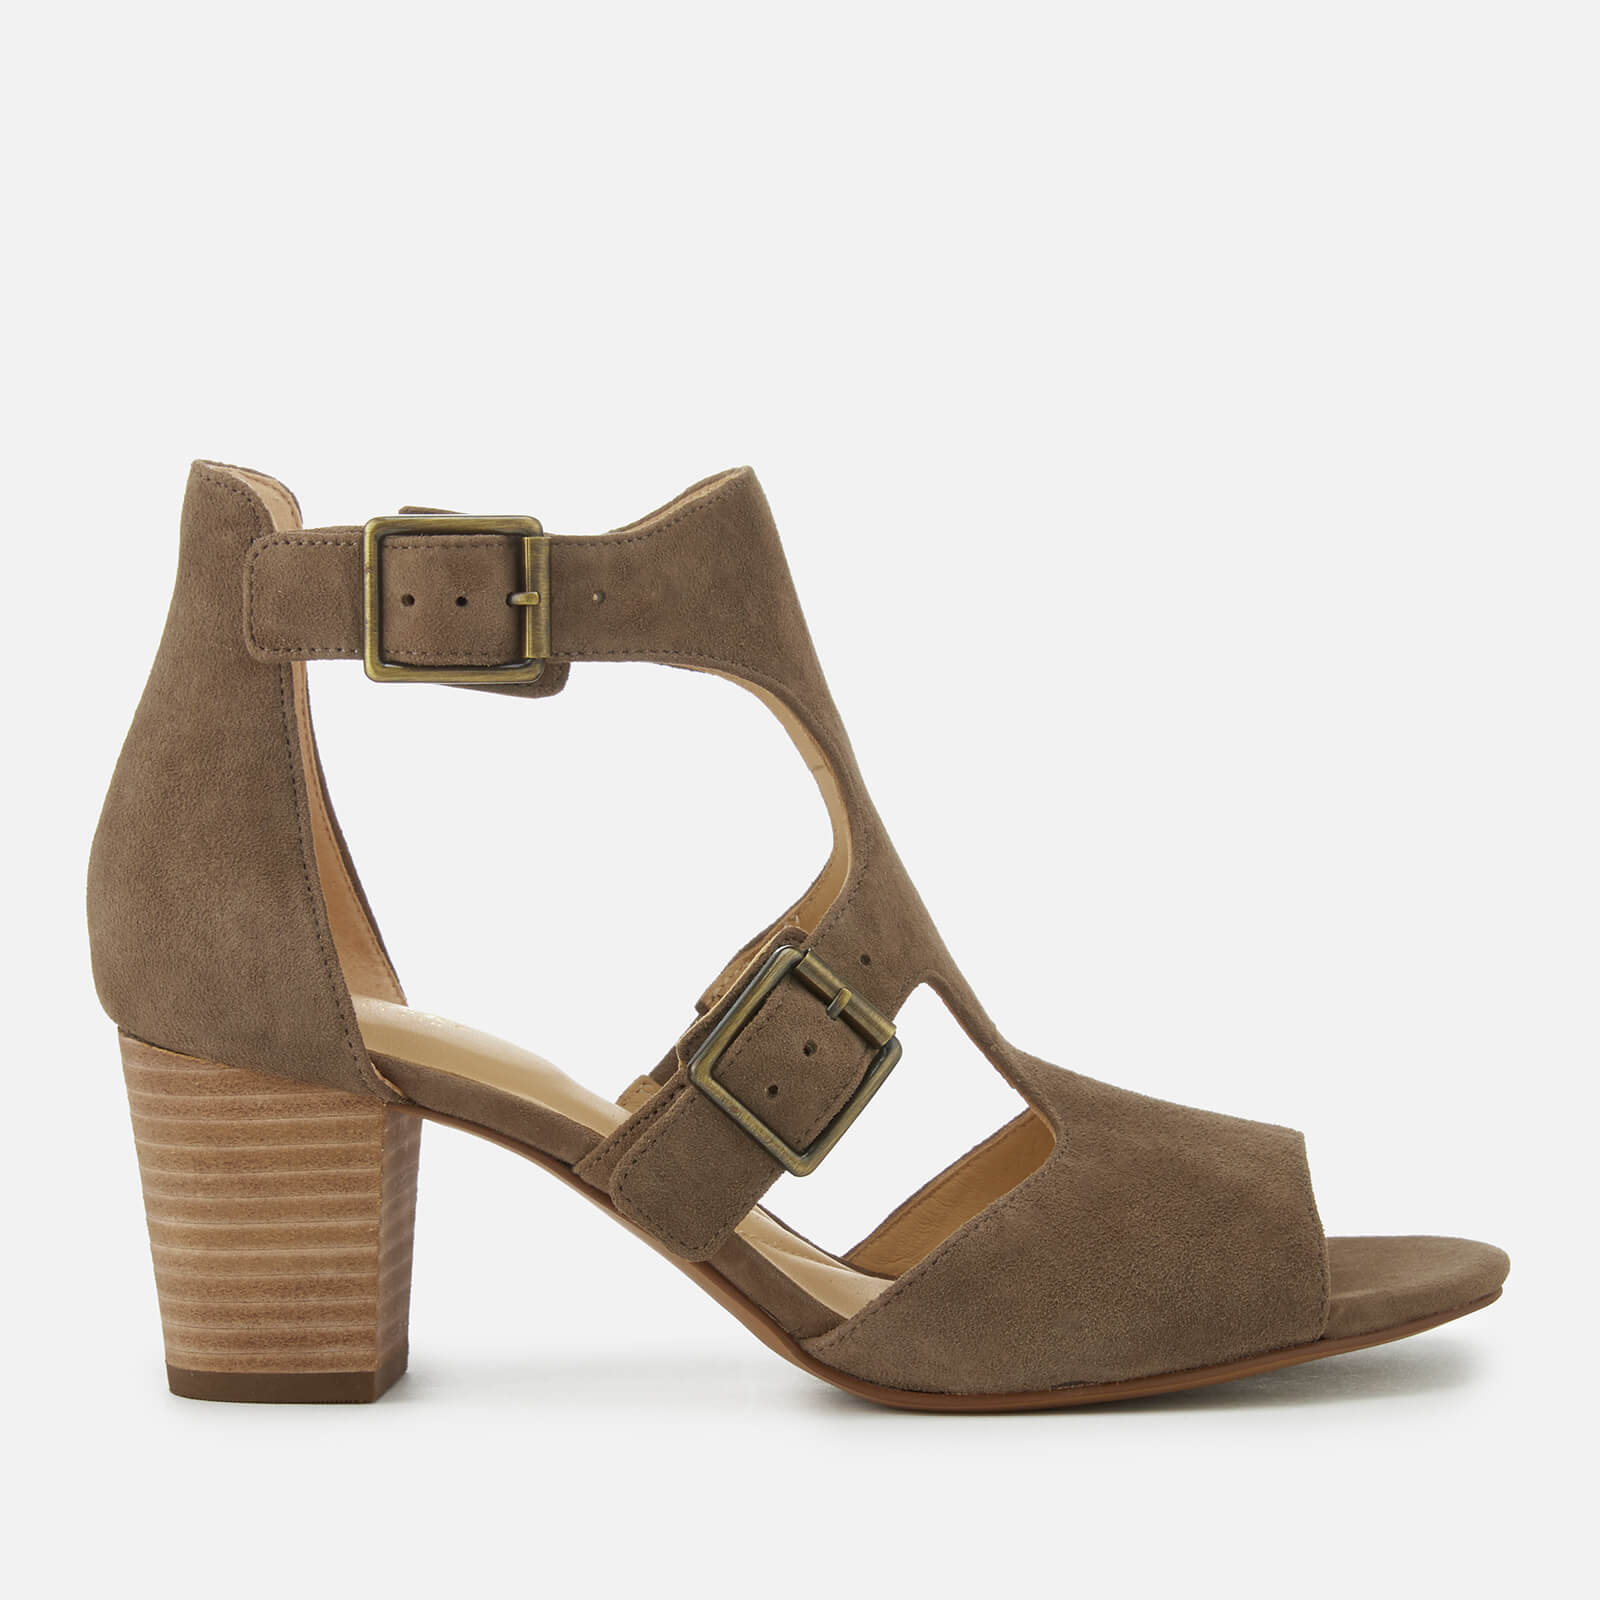 b378acad6 Clarks Women's Deloria Kay Suede Block Heeled Sandals - Olive | FREE UK  Delivery | Allsole